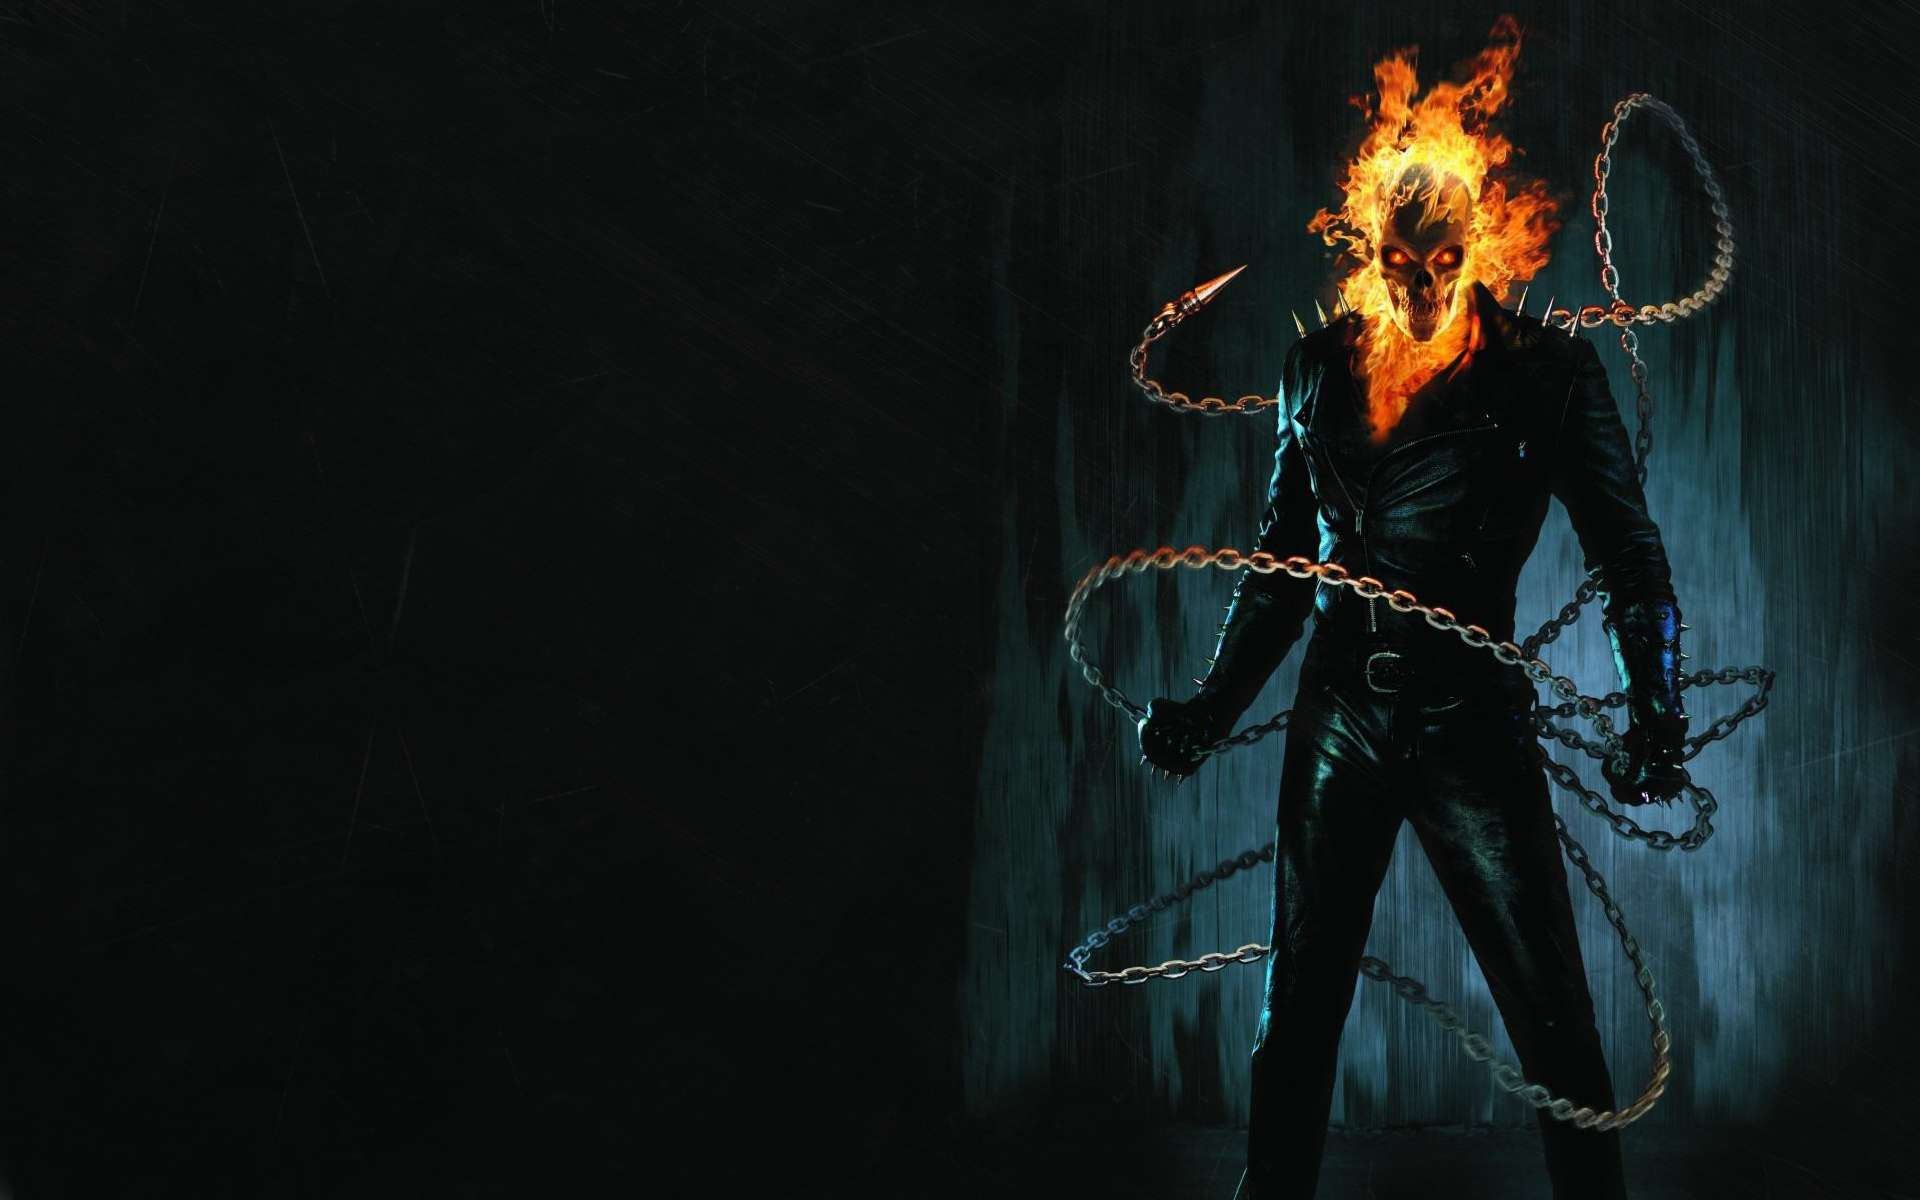 Ghost Rider 4 Wallpapers Hd Wallpapers 1920x1200